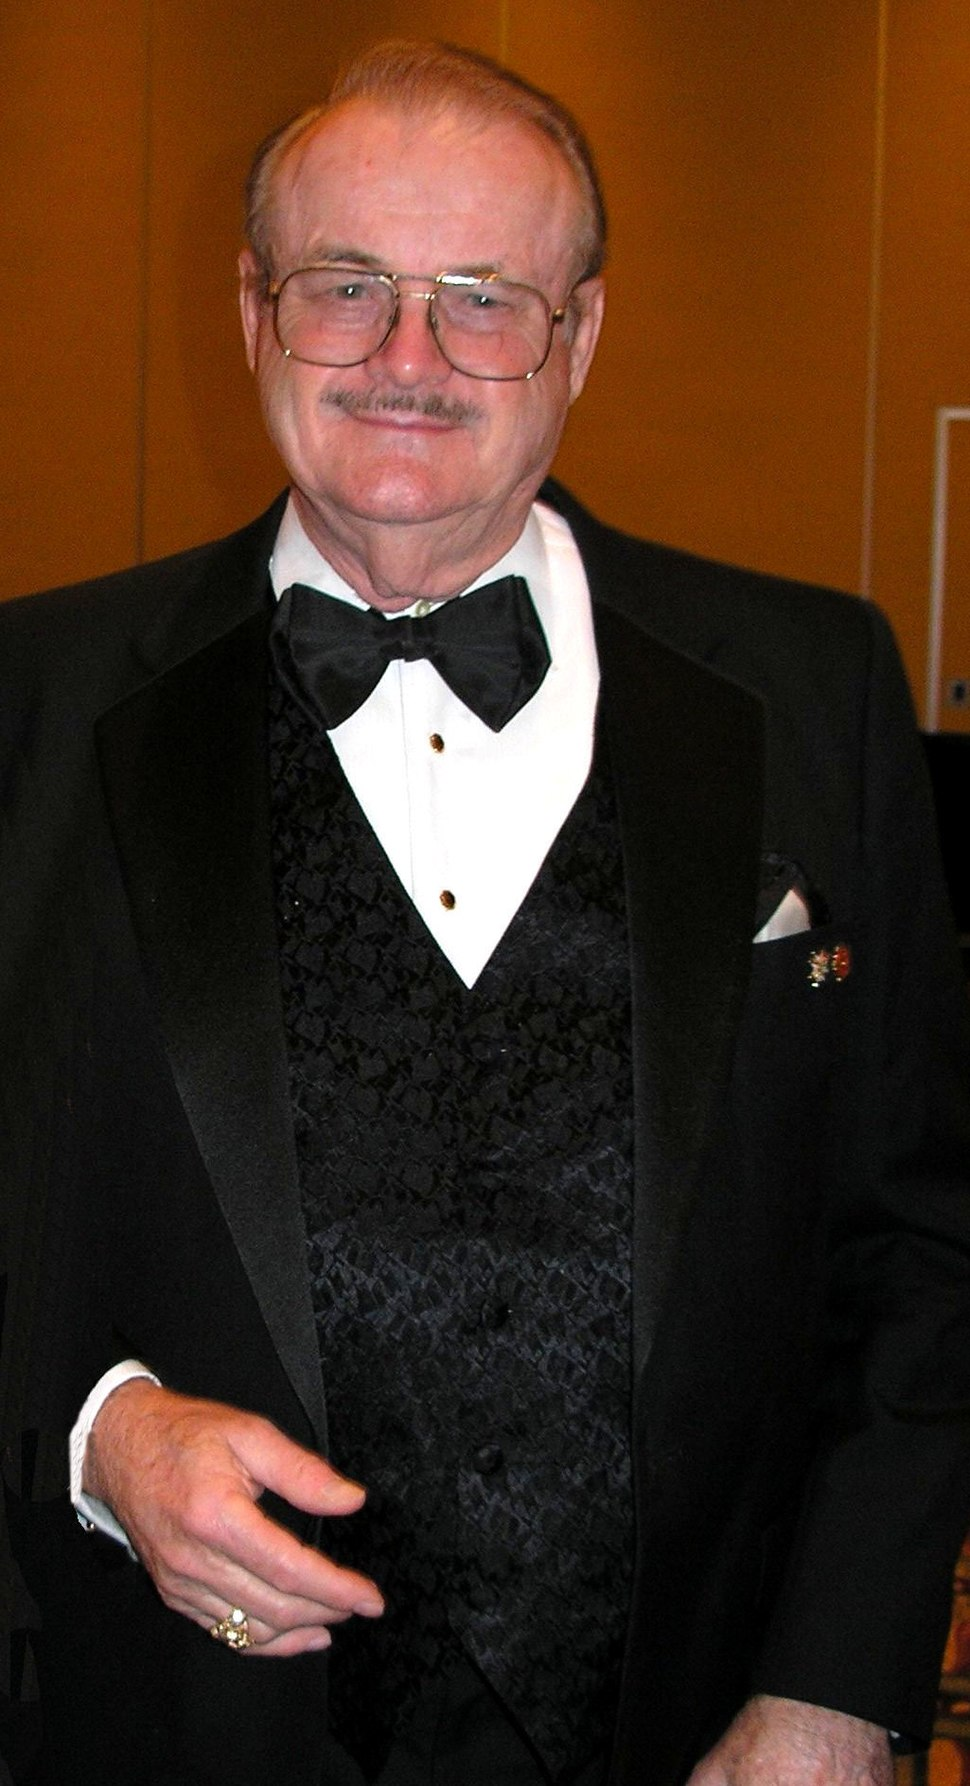 Pournelle at NASFiC in 2005